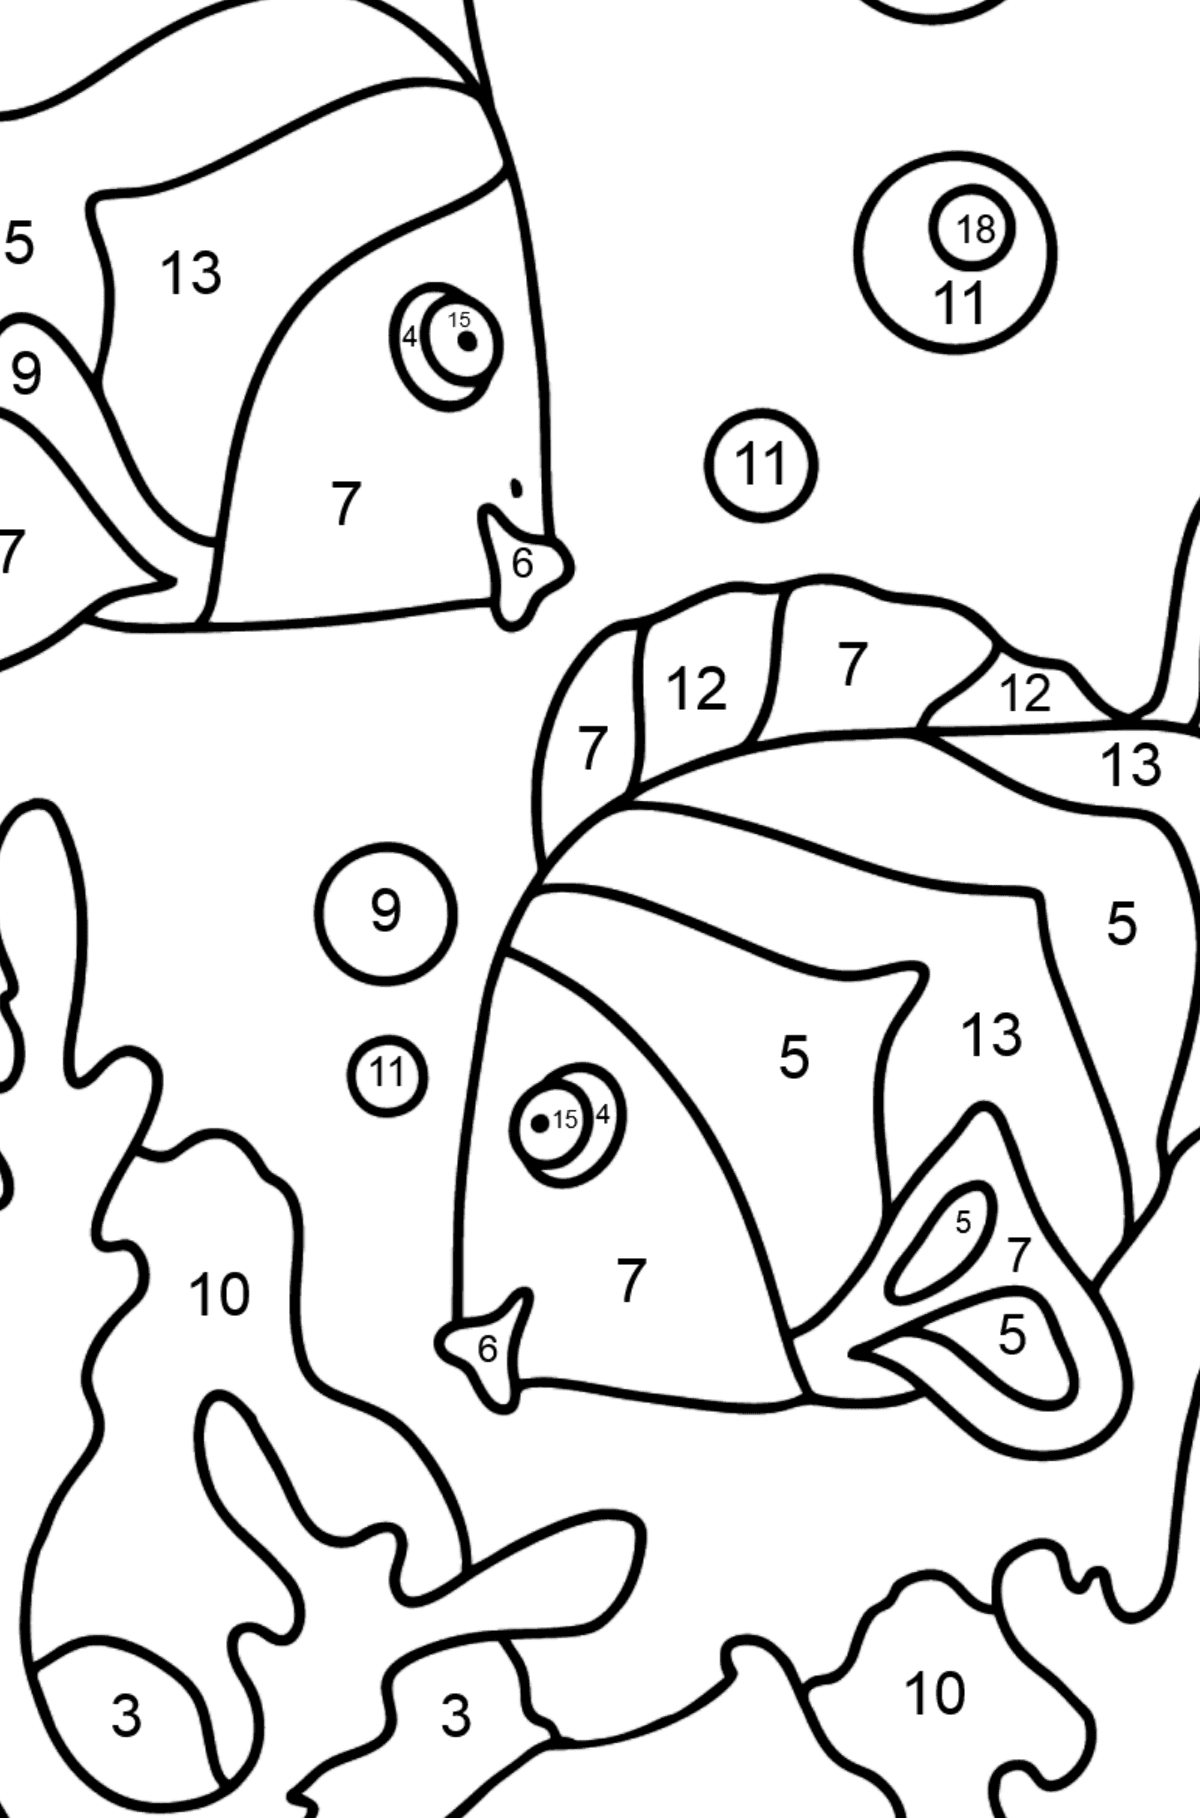 Coloring Page - Fish are Swimming Very Energetically - Coloring by Numbers for Kids